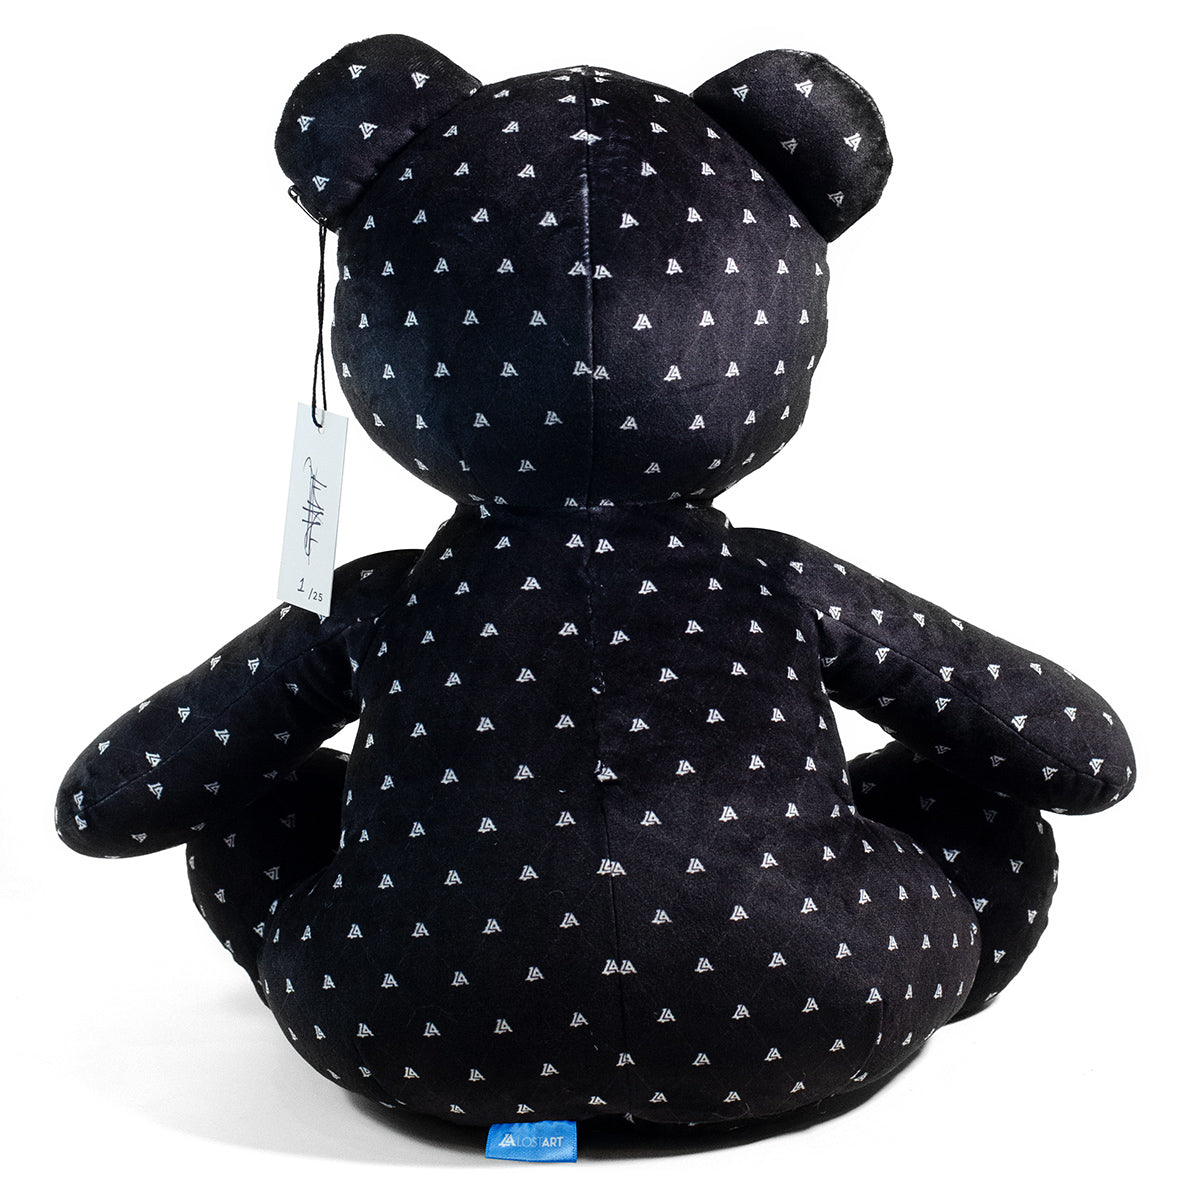 Lost Art Canada - black white patterned teddy bear back view